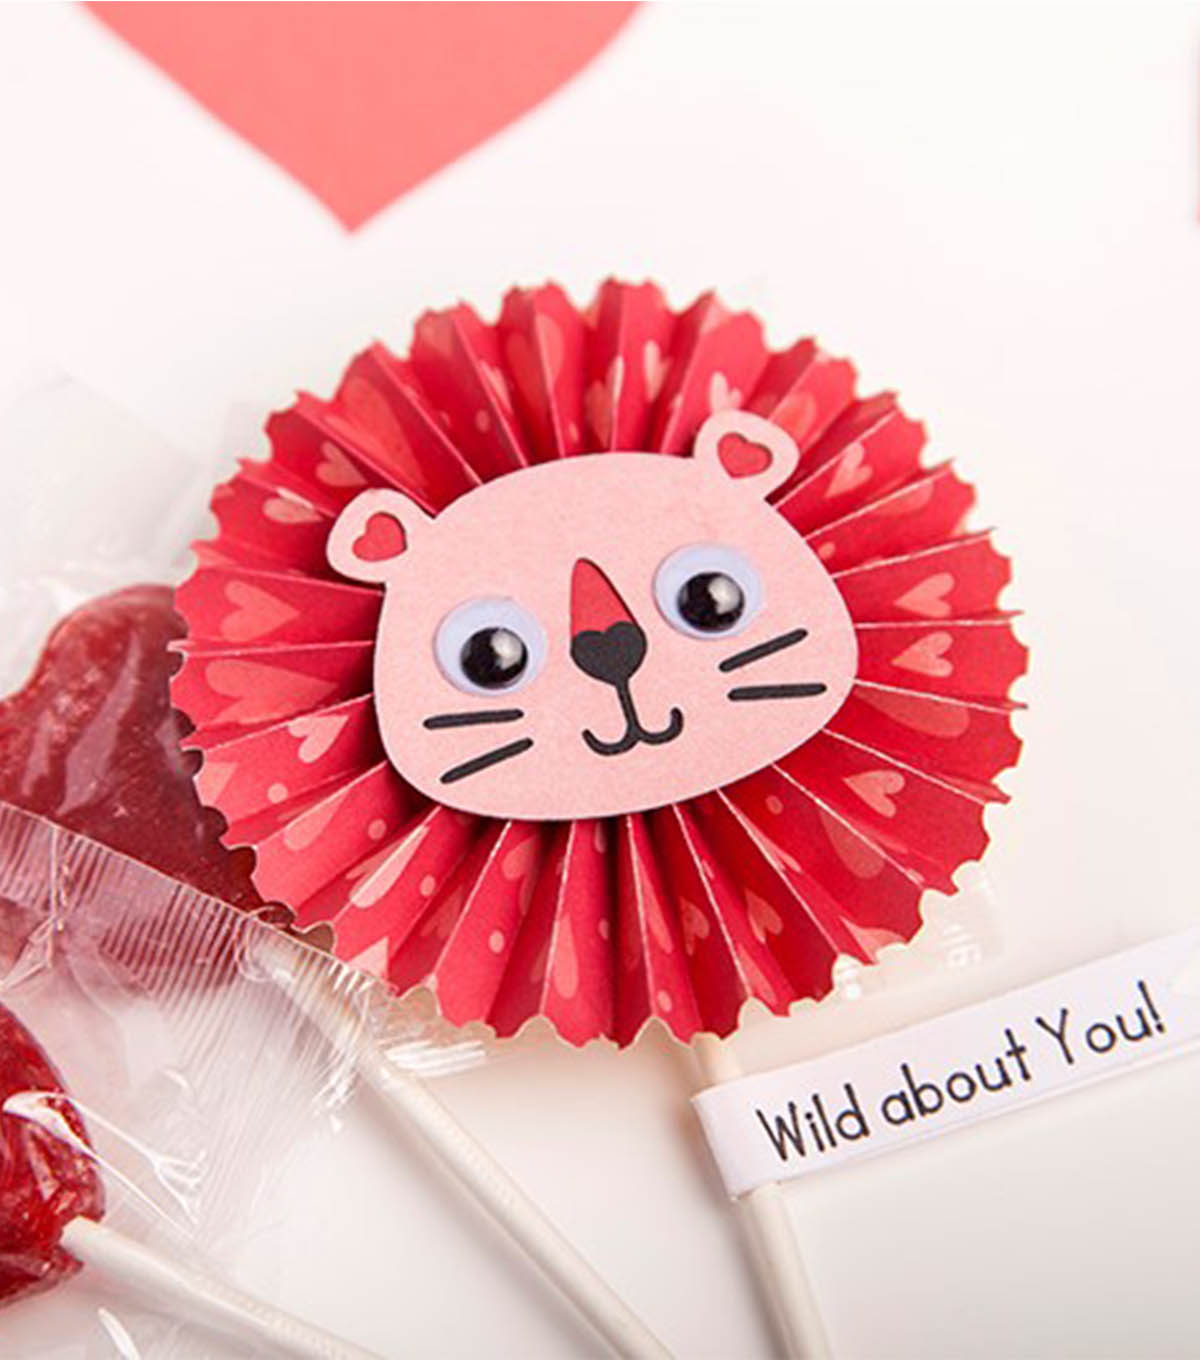 Simple Origami Lollipop Instructions Step by Step - Kids Can Make | 1360x1200